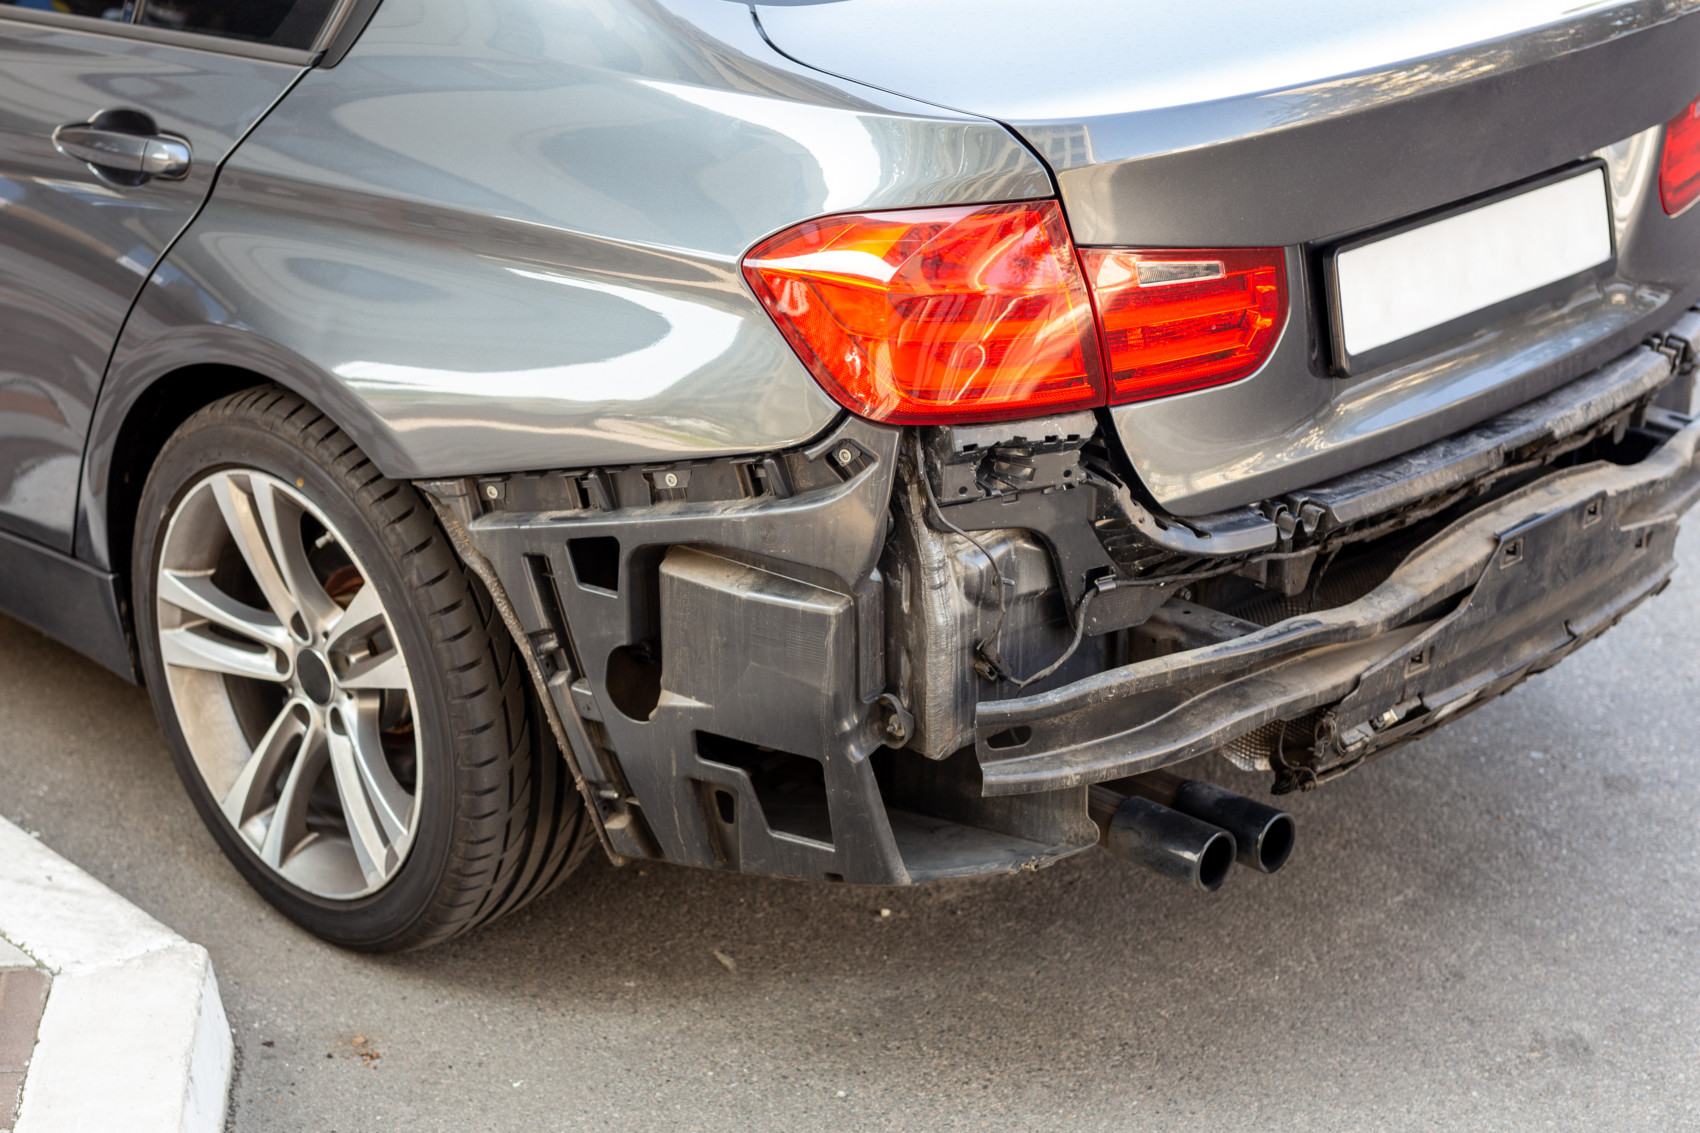 Tail of modern car with removed rear bumper. Vehicle after traffic accident and crash. Transport repair and insurance